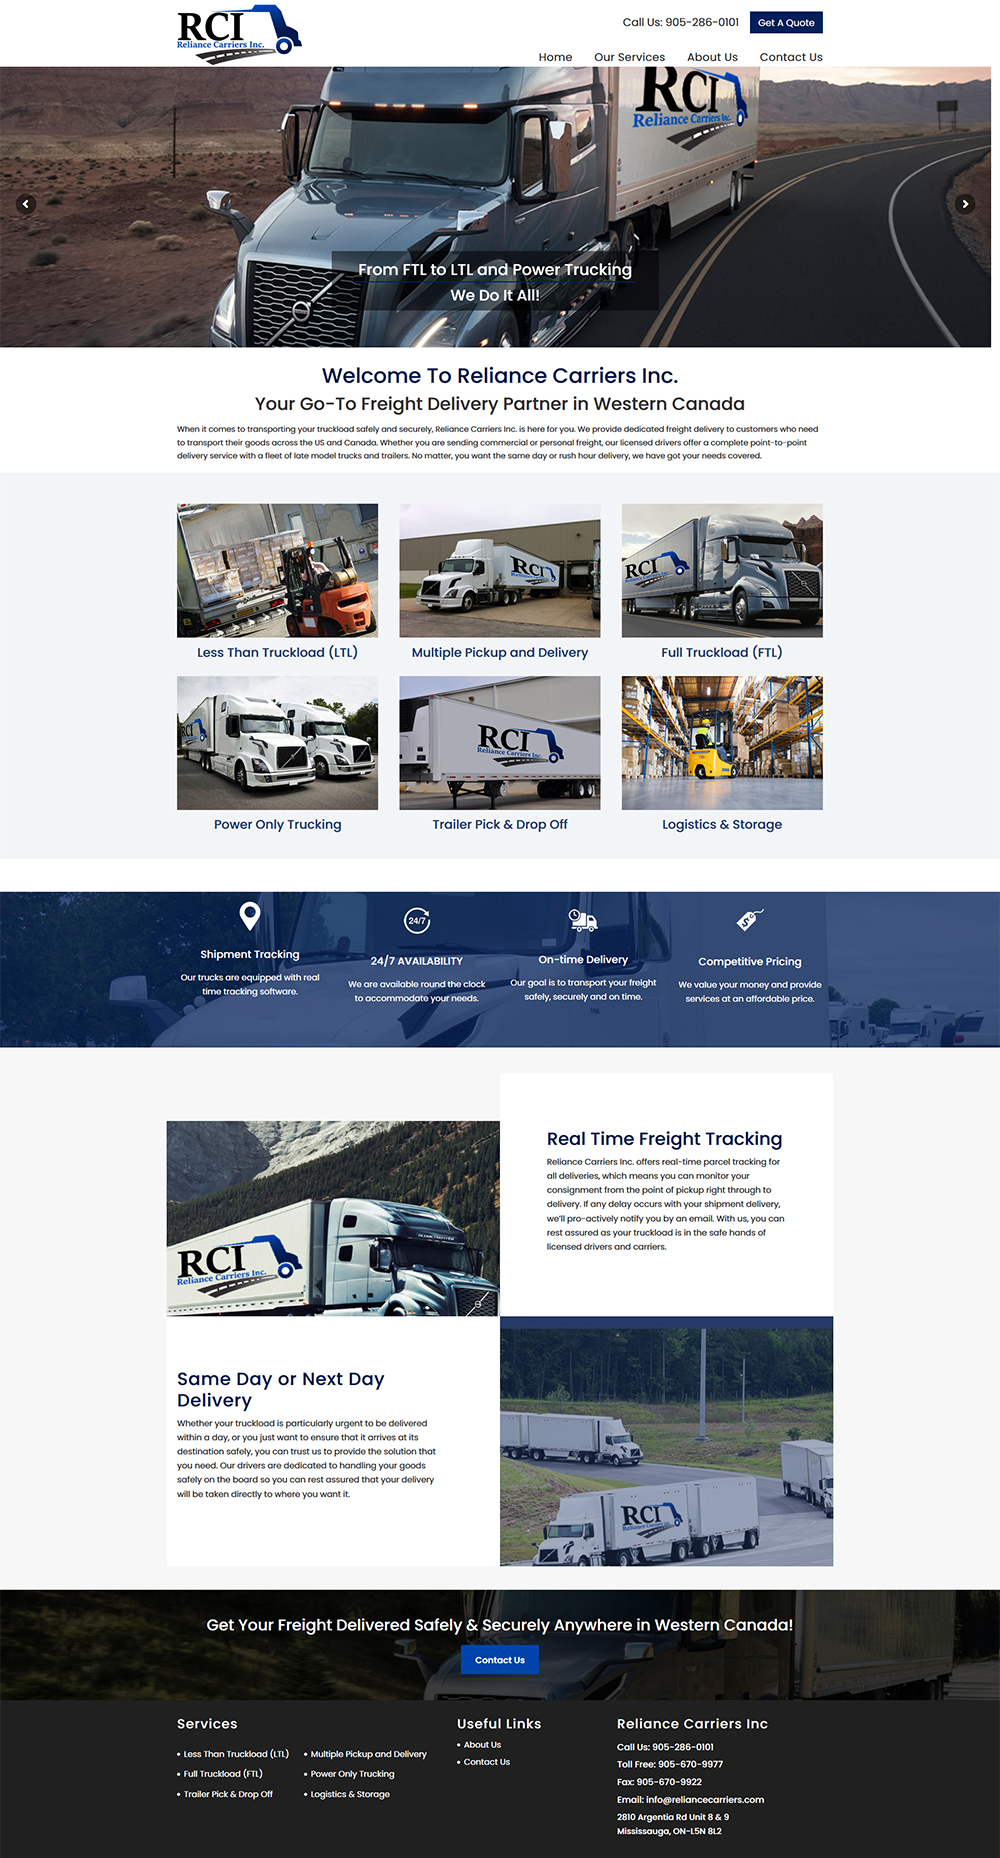 Web Design Company St. Catharines